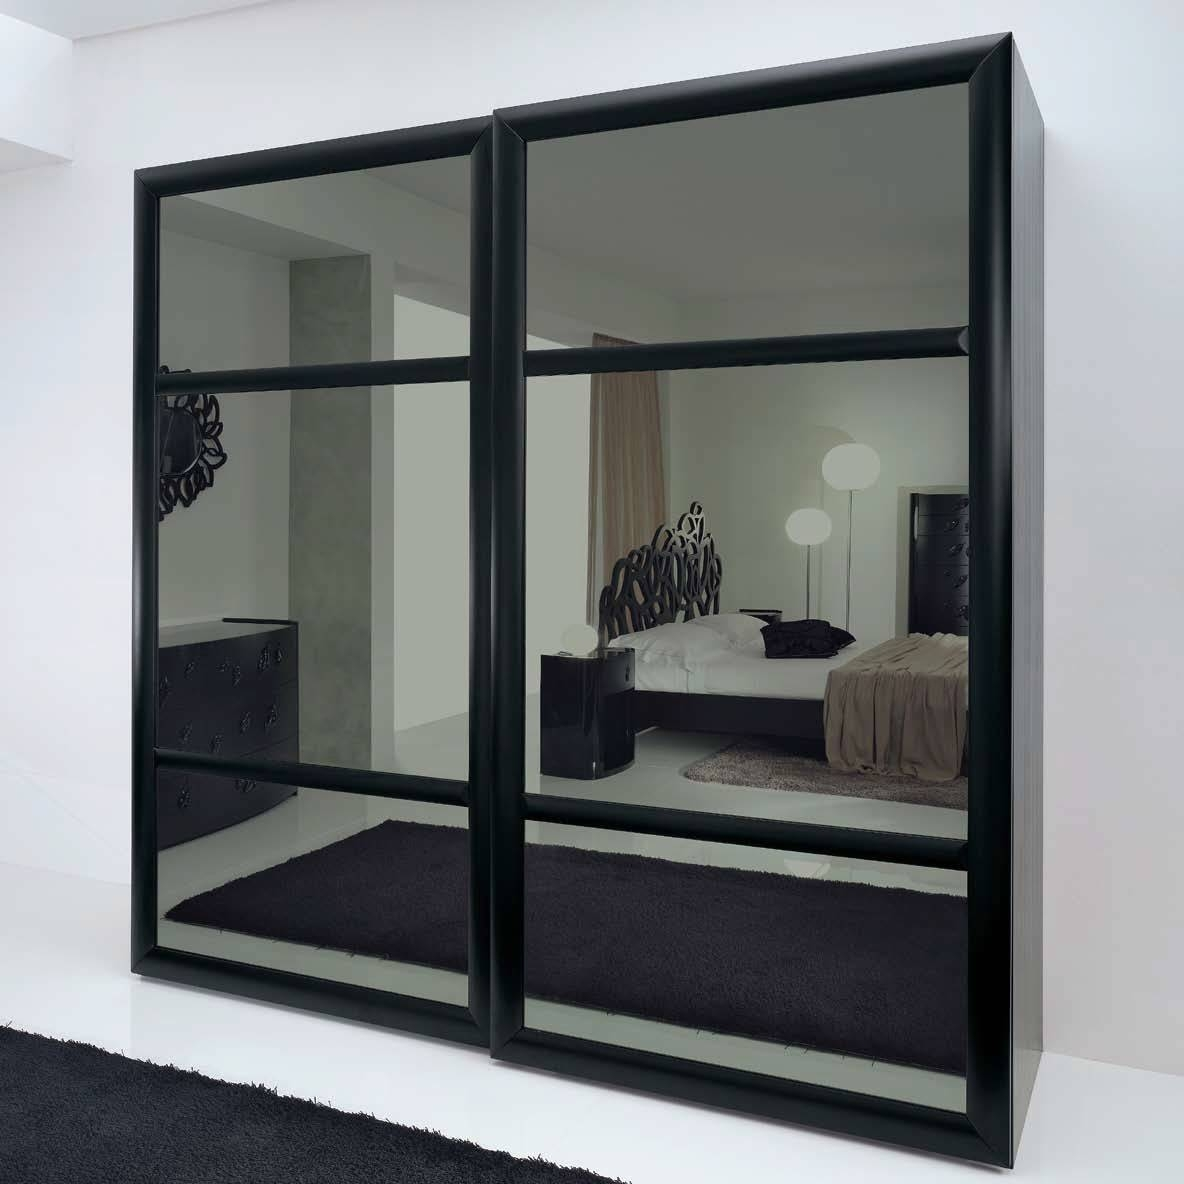 Mirror Wardrobe Closet. Attractive Outdoor Patio Rugs Ikea 4 Ikea in Black Wardrobes With Mirror (Image 10 of 15)